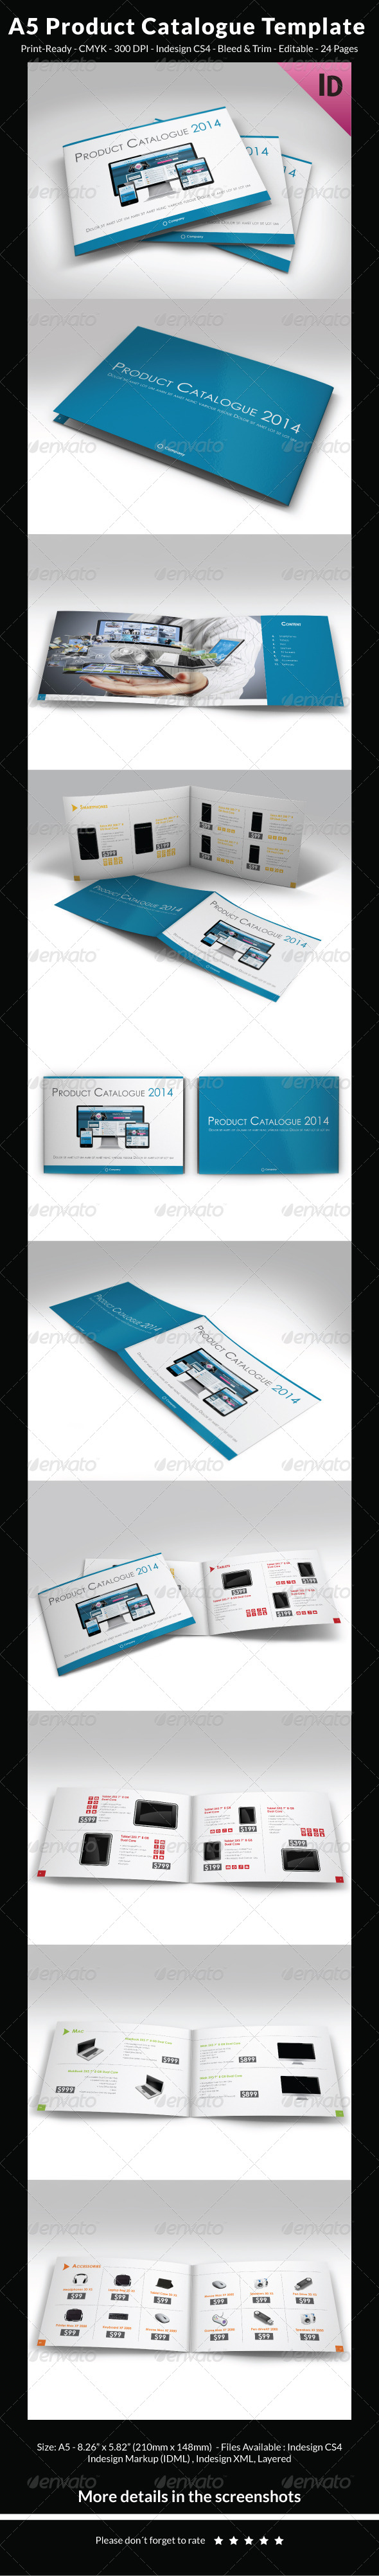 Presentation Template InDesign Graphics, Designs & Templates (Page 3)